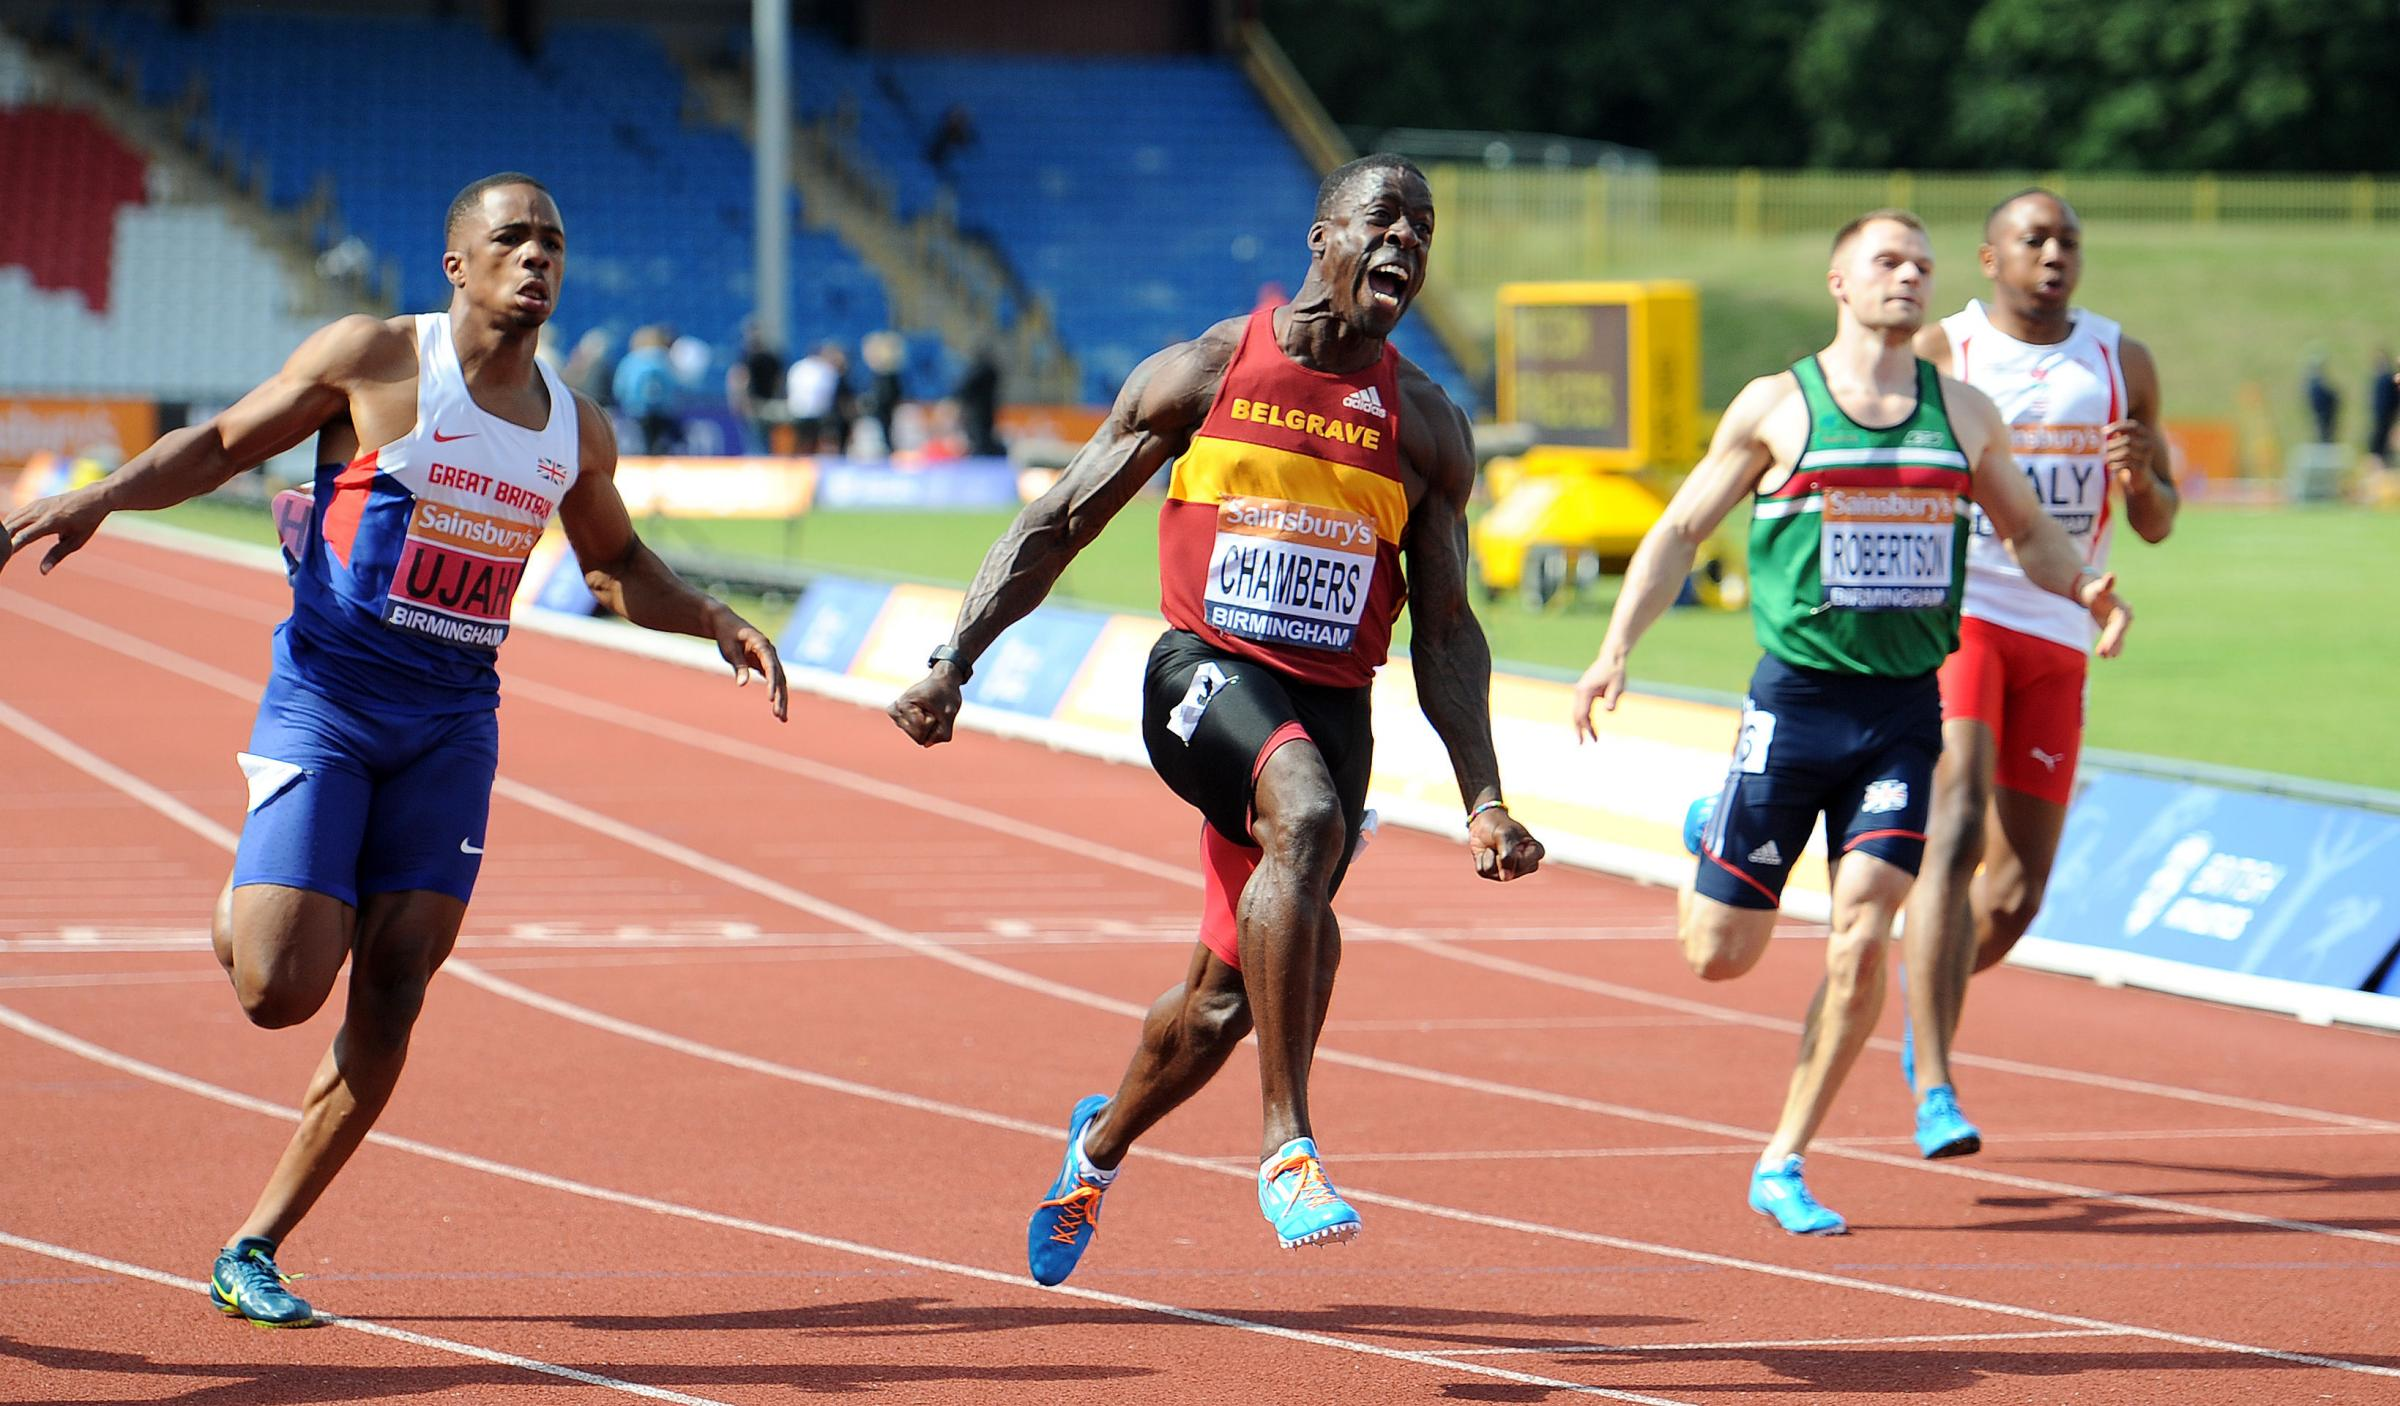 CHAMBERS VICTORY: Dwain Chambers celebrates his 100m victory while Middlesbrough's Richard Kilty, not pictured, finished fourth in the event in Birmingham yesterday